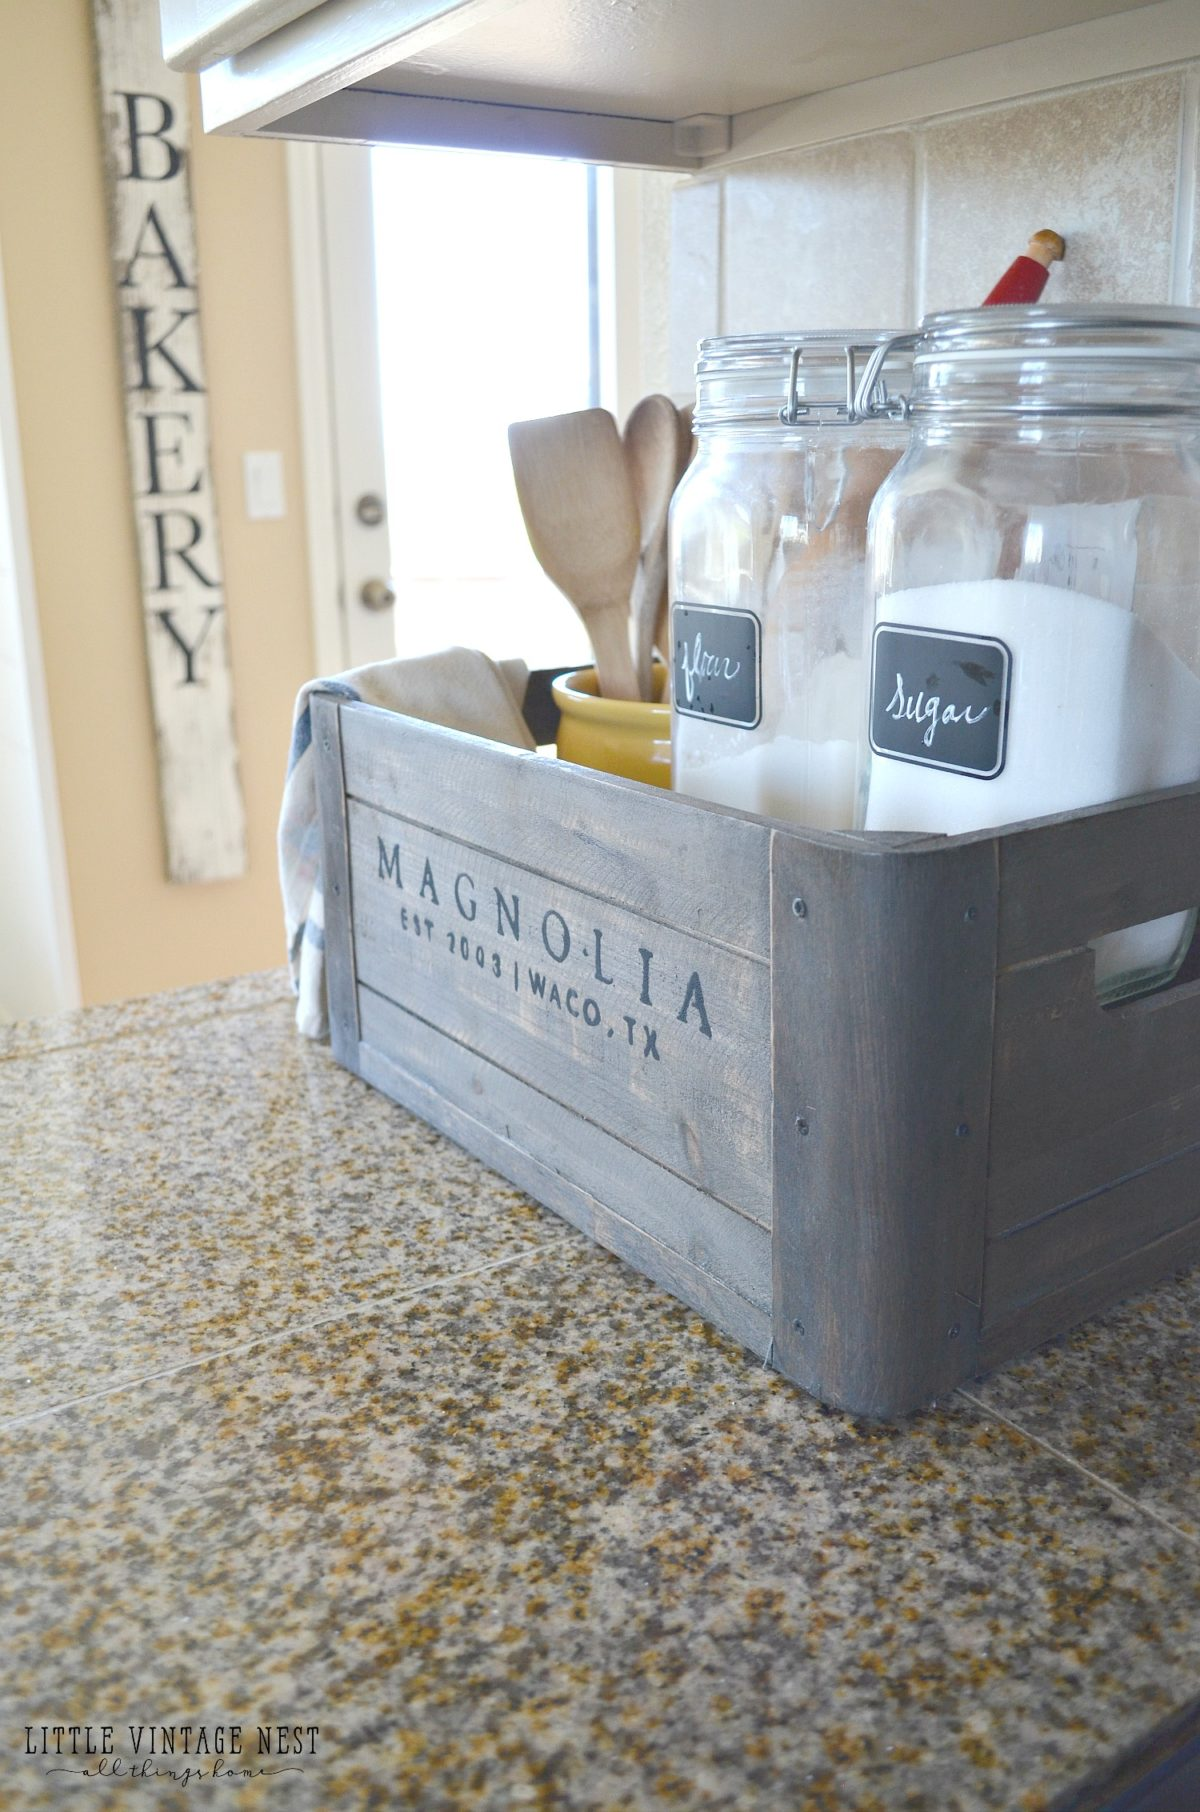 5 Ways to Style a Wooden Crate Farmhouse Kitchen Decor 2 - Little ...